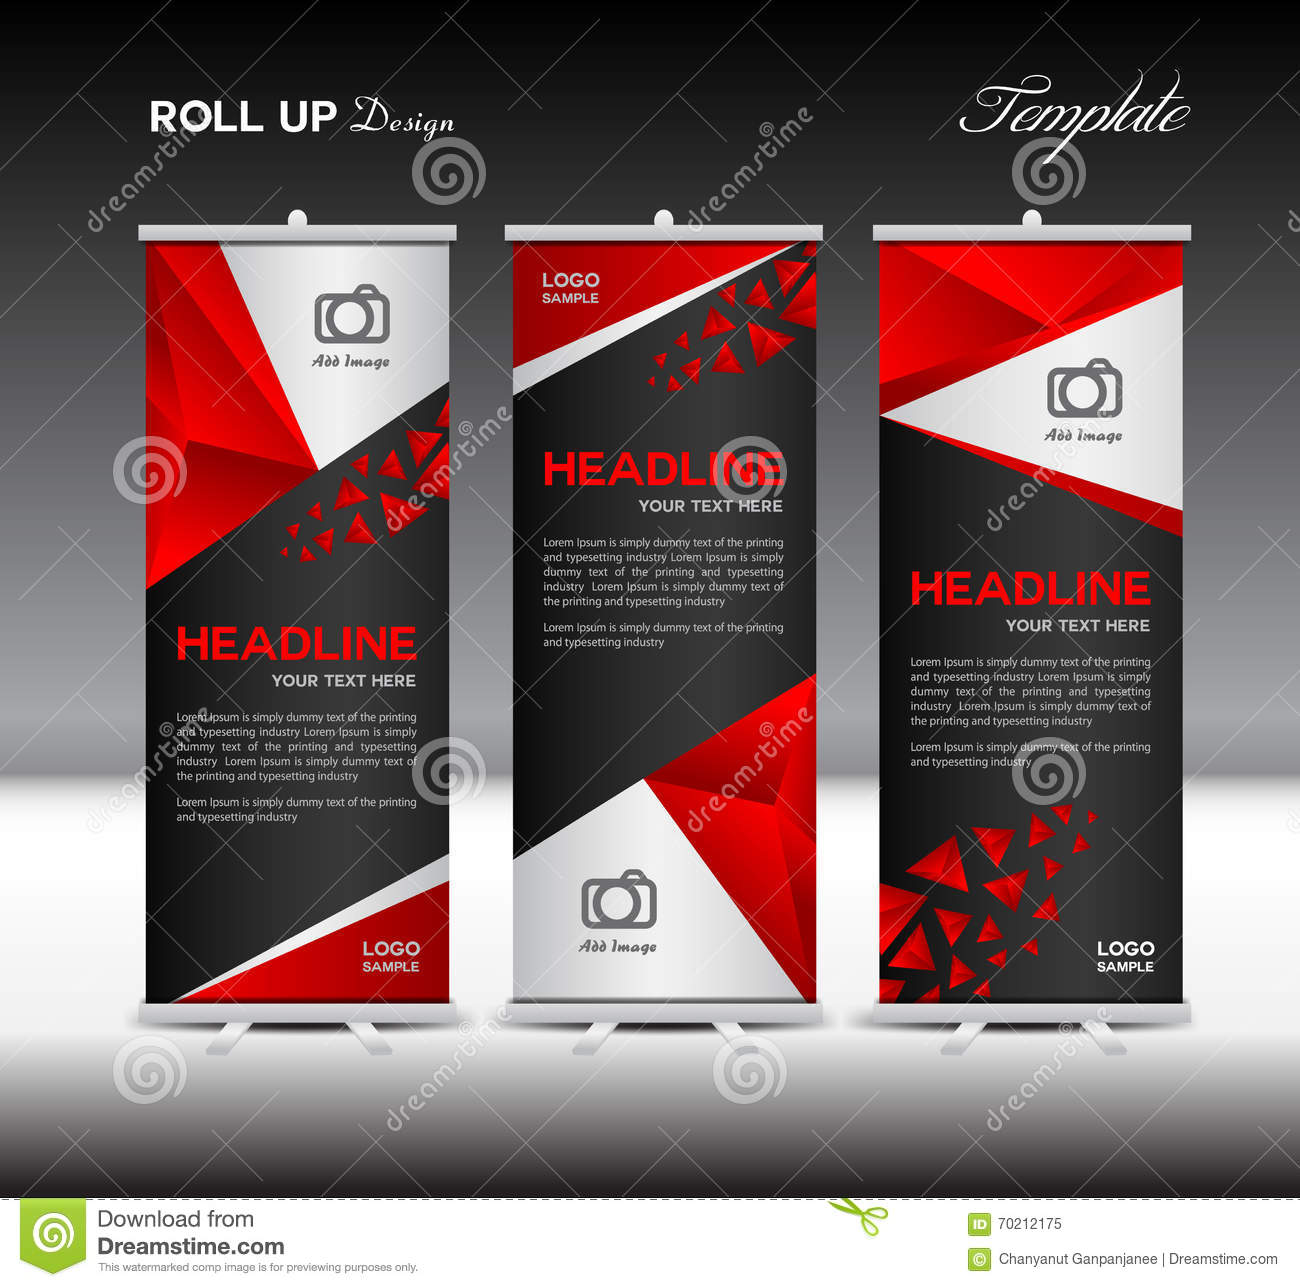 red roll up banner template vector illustration banner. Black Bedroom Furniture Sets. Home Design Ideas